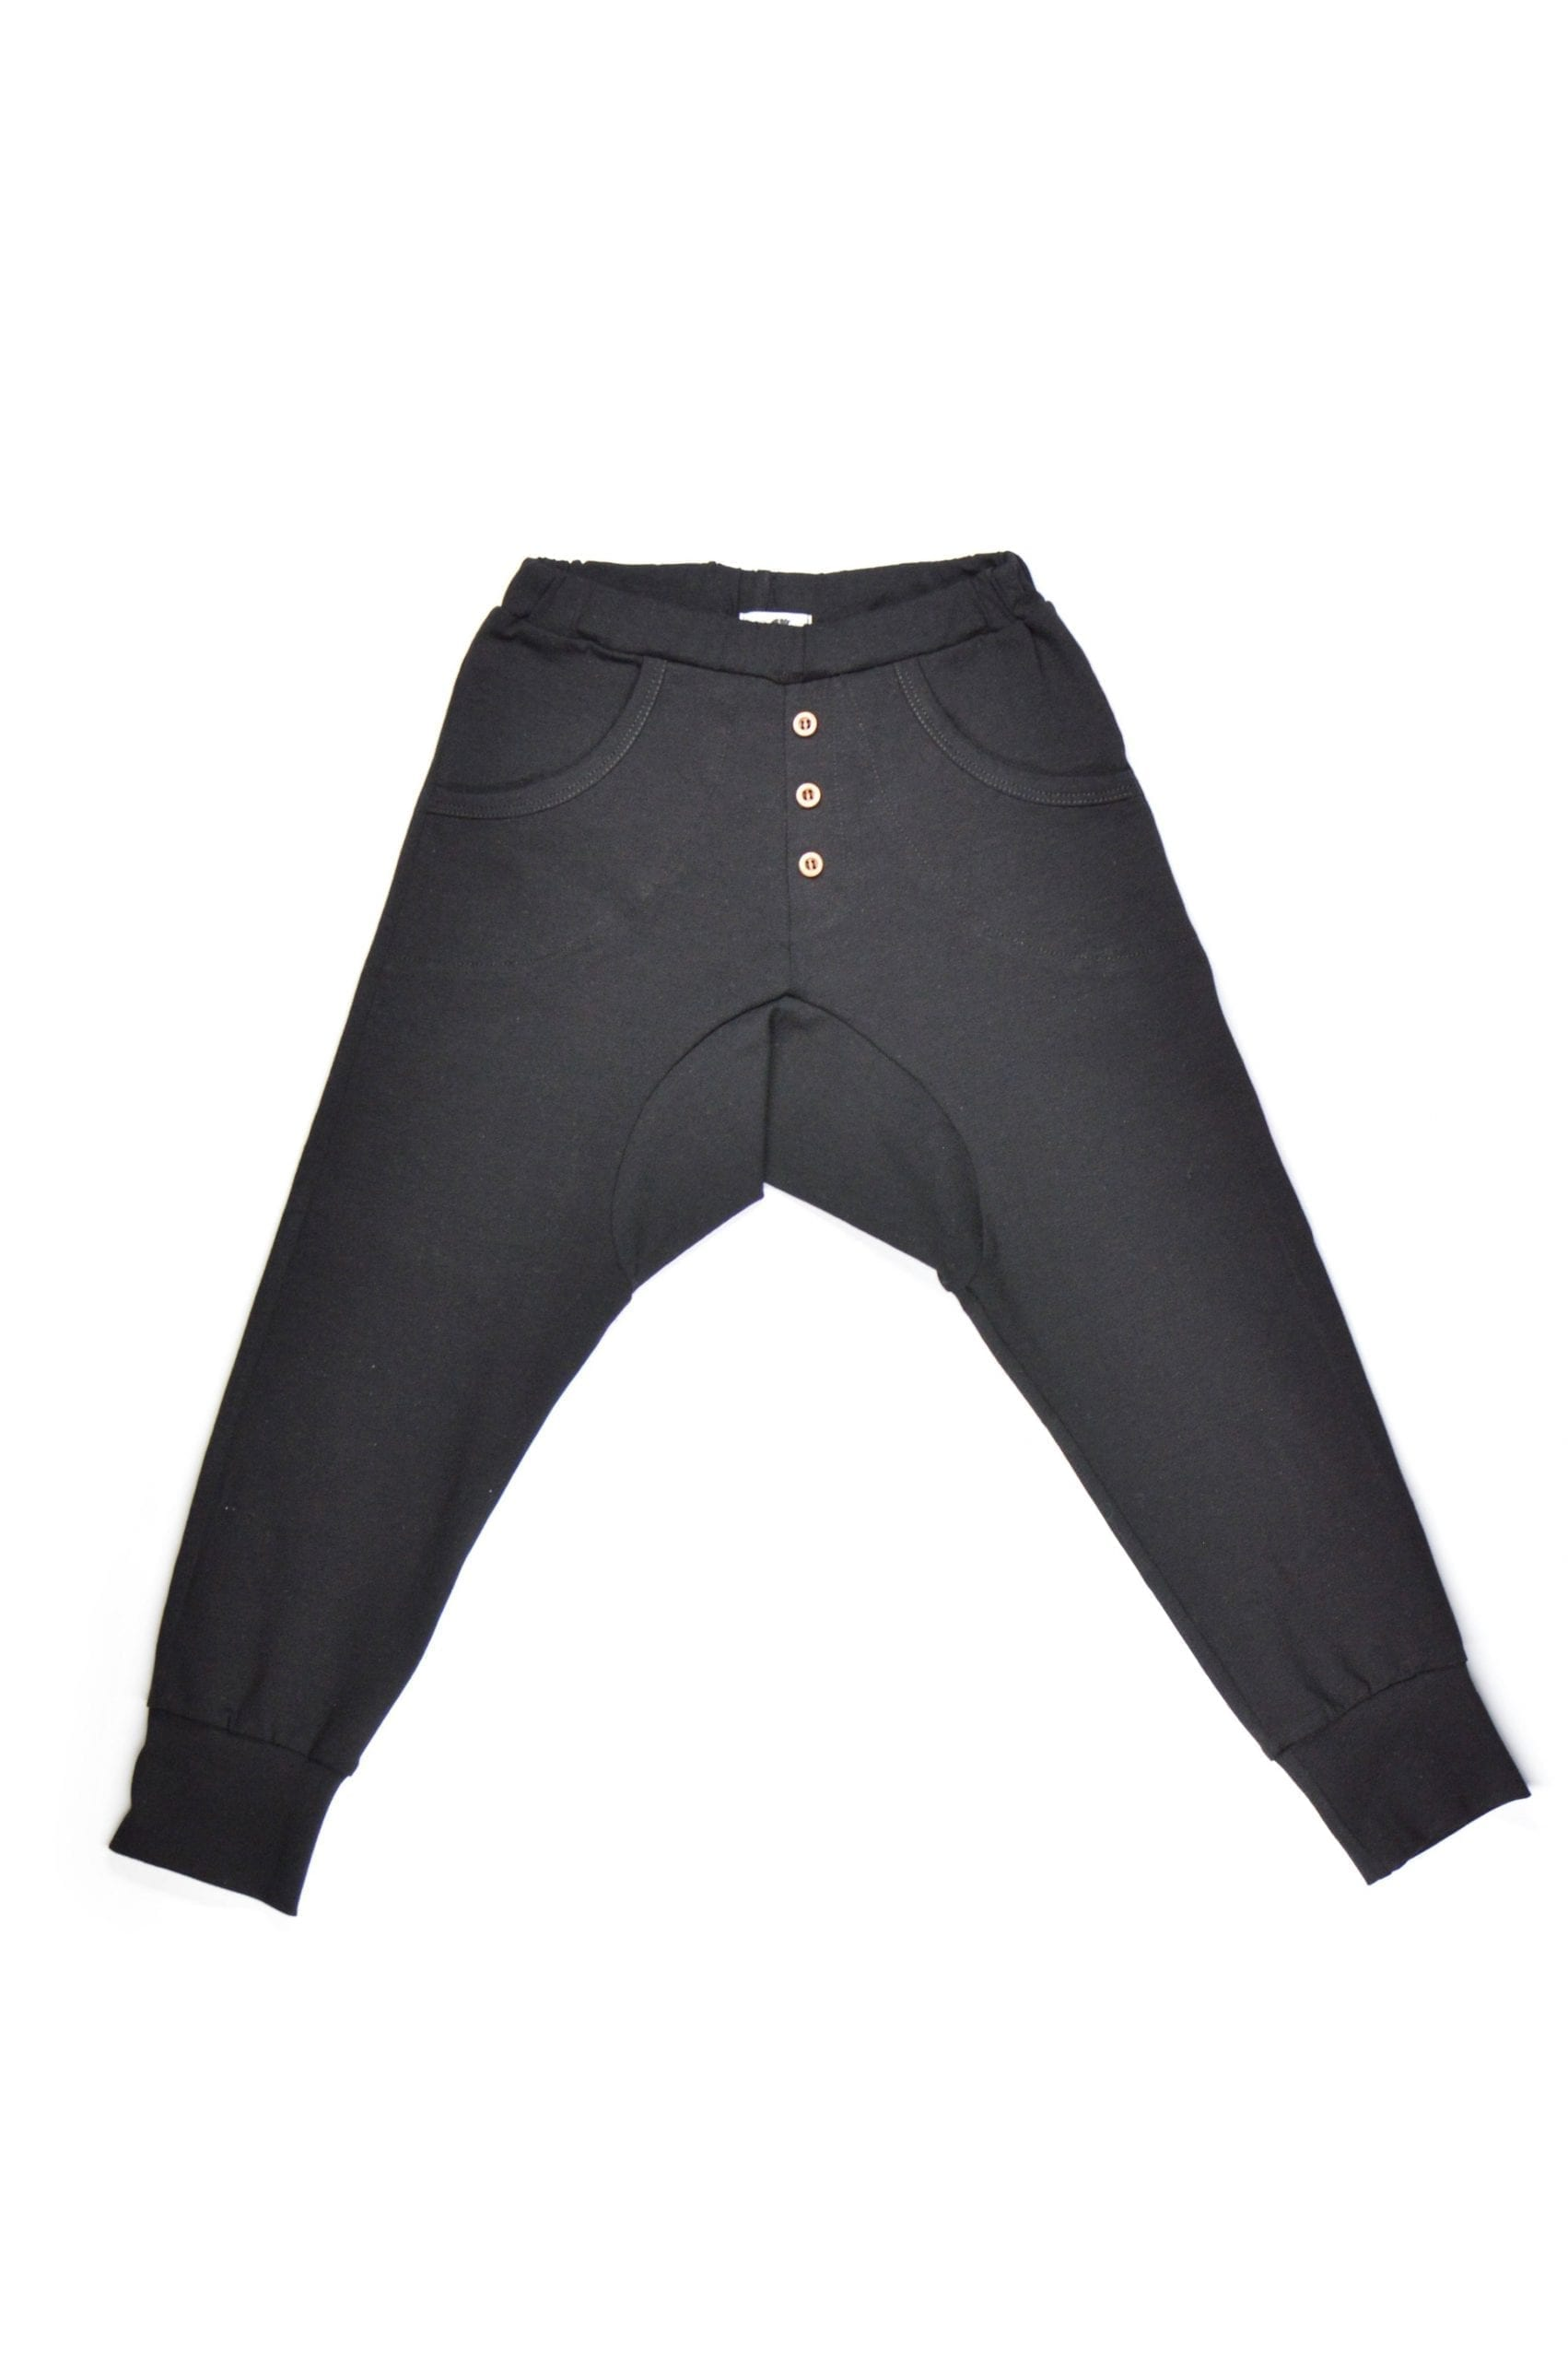 Black unisex jersey pants with buttons for kid, toddler, boy, girl, baby